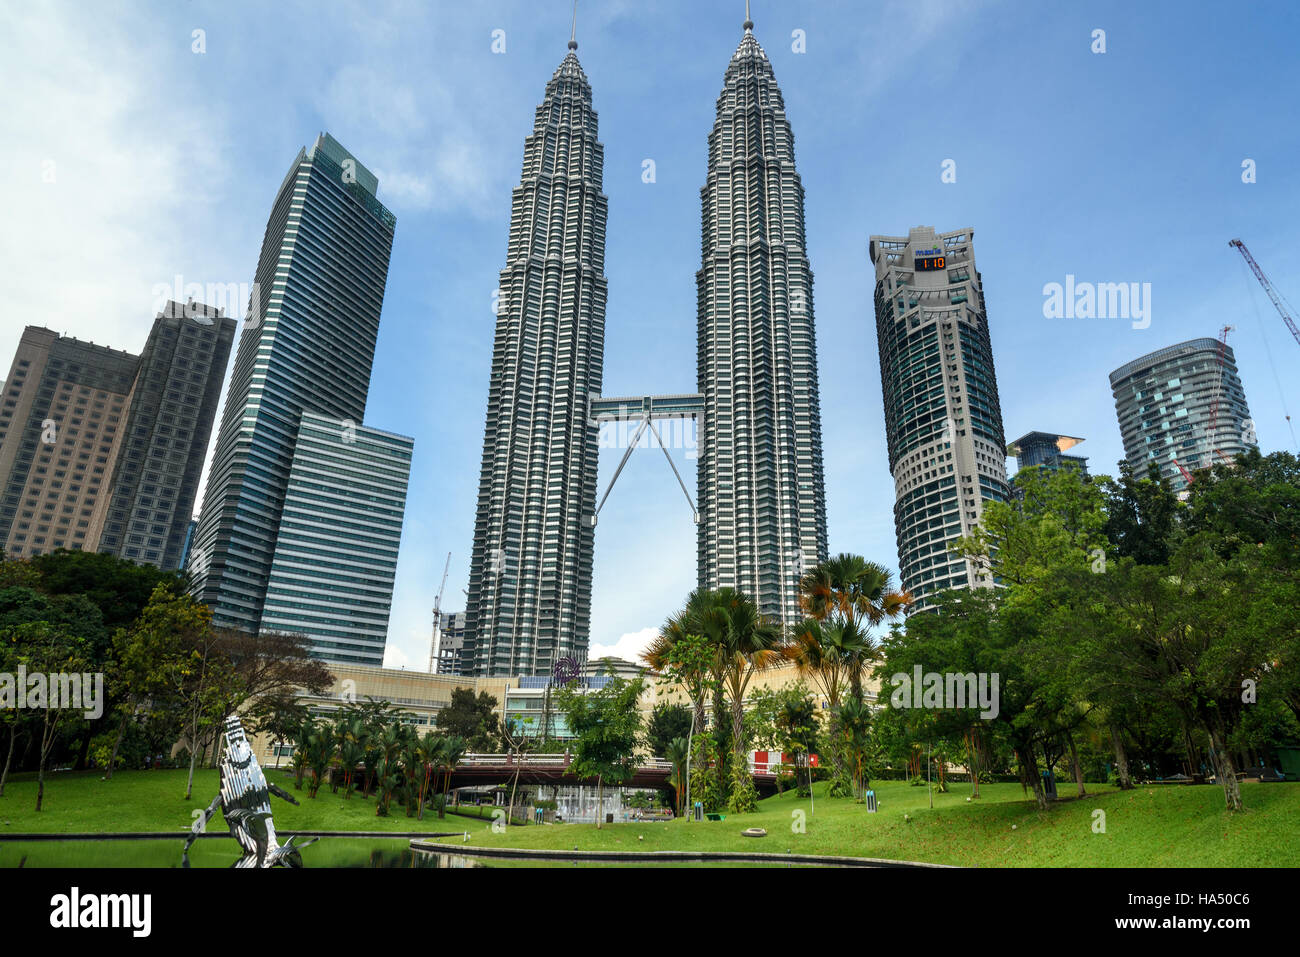 Petronas Twin Towers  View from KLCC  Park The skyscraper